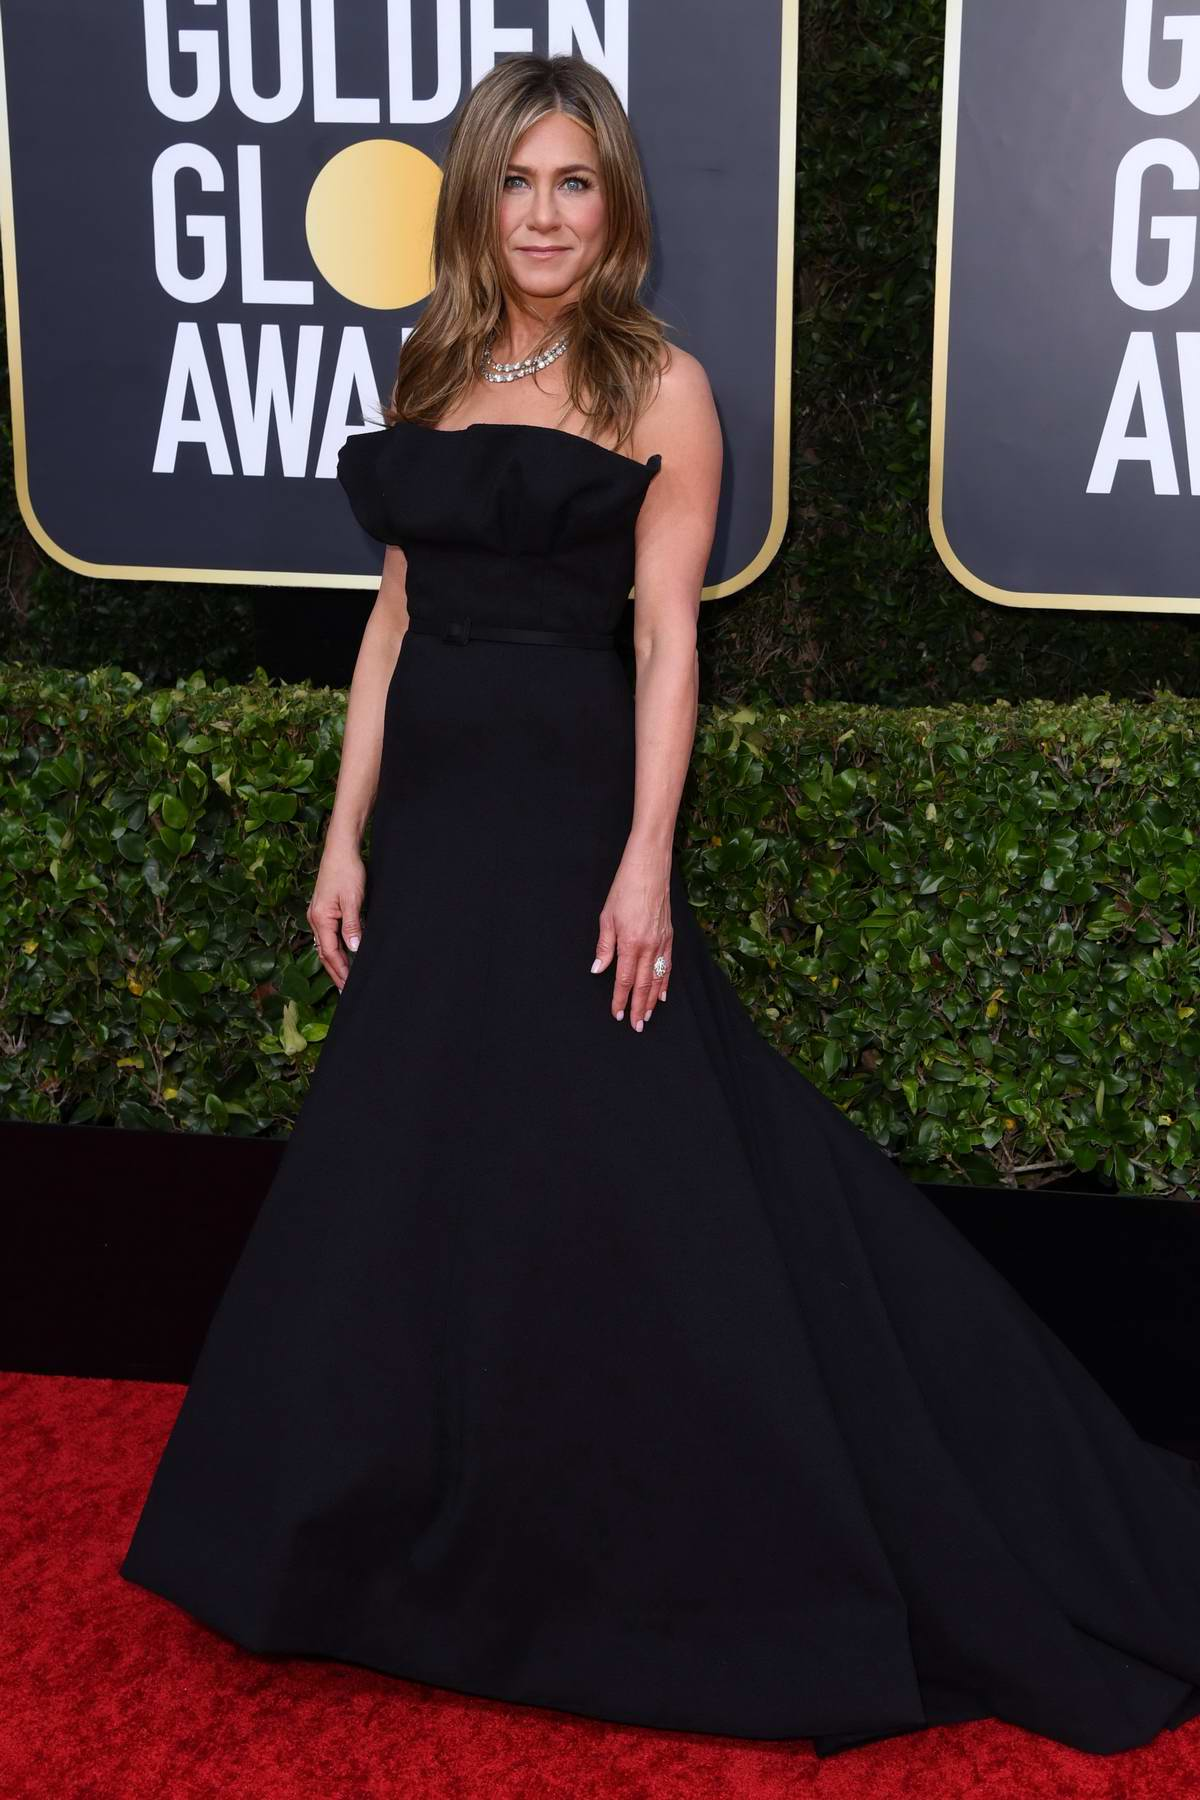 Jennifer Aniston attends the 77th Annual Golden Globe Awards at The Beverly Hilton Hotel in Beverly Hills, California